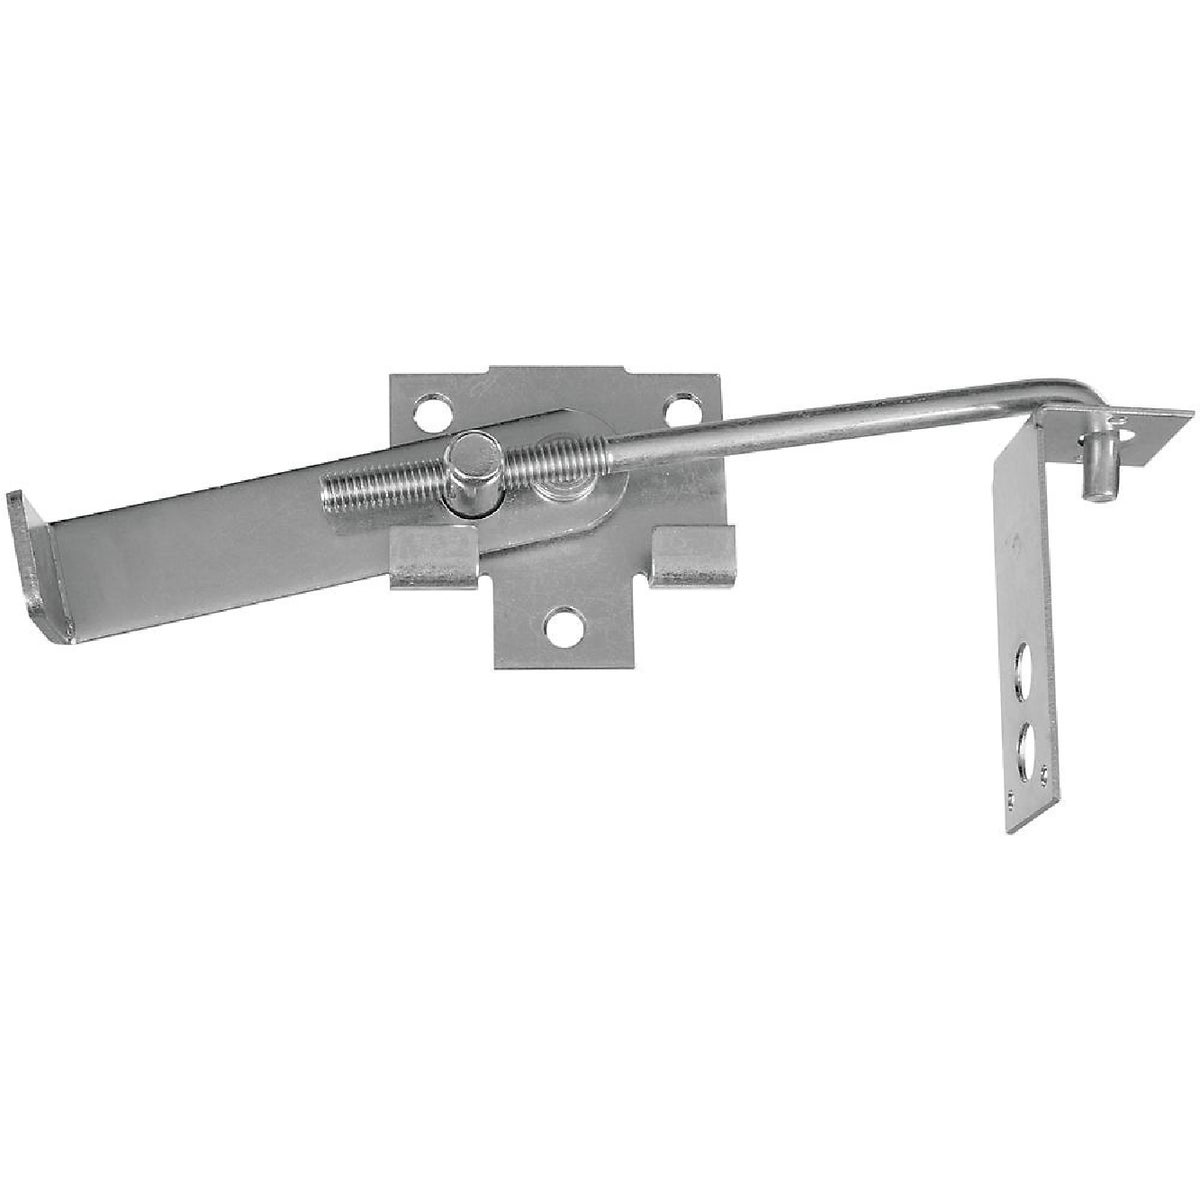 SLIDING DOOR LATCH - N161760 by National Mfg Co